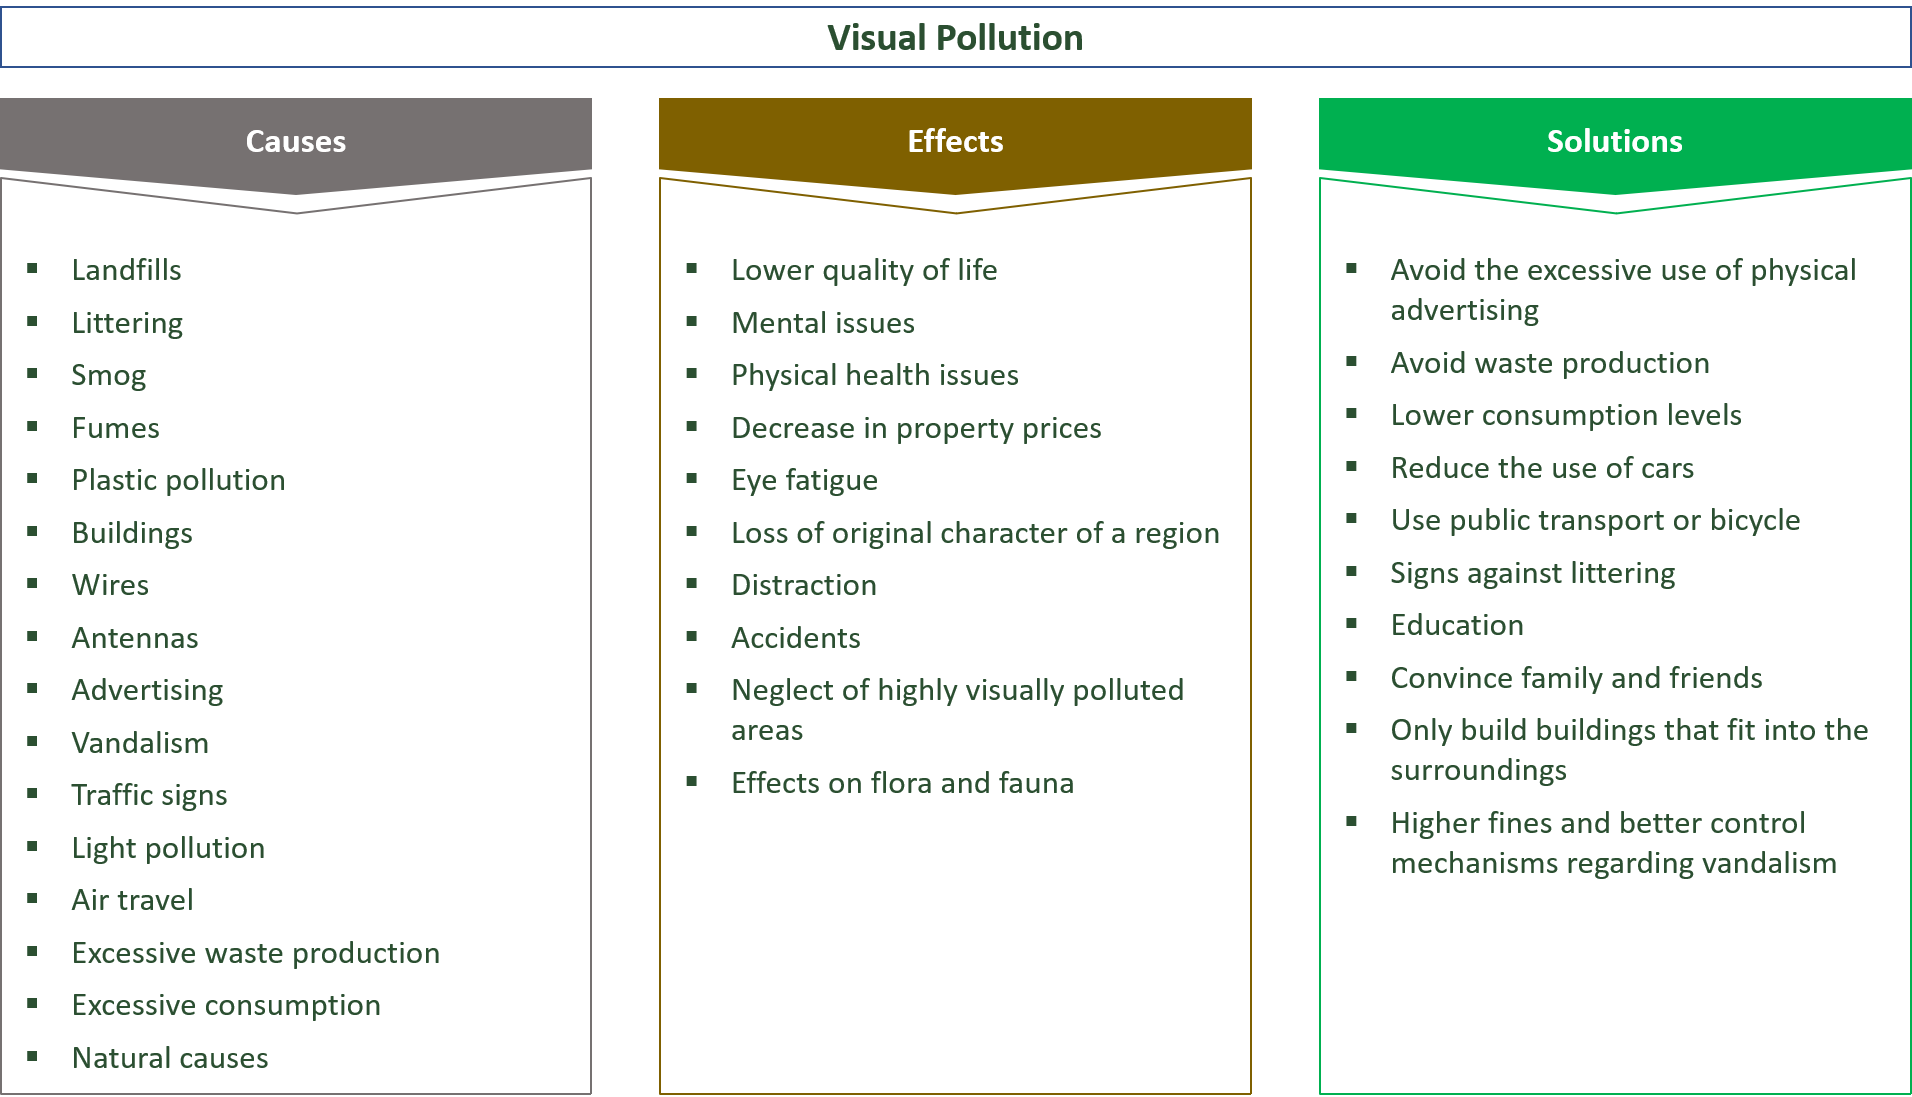 causes, effects and solutions for visual pollution and environmental stress